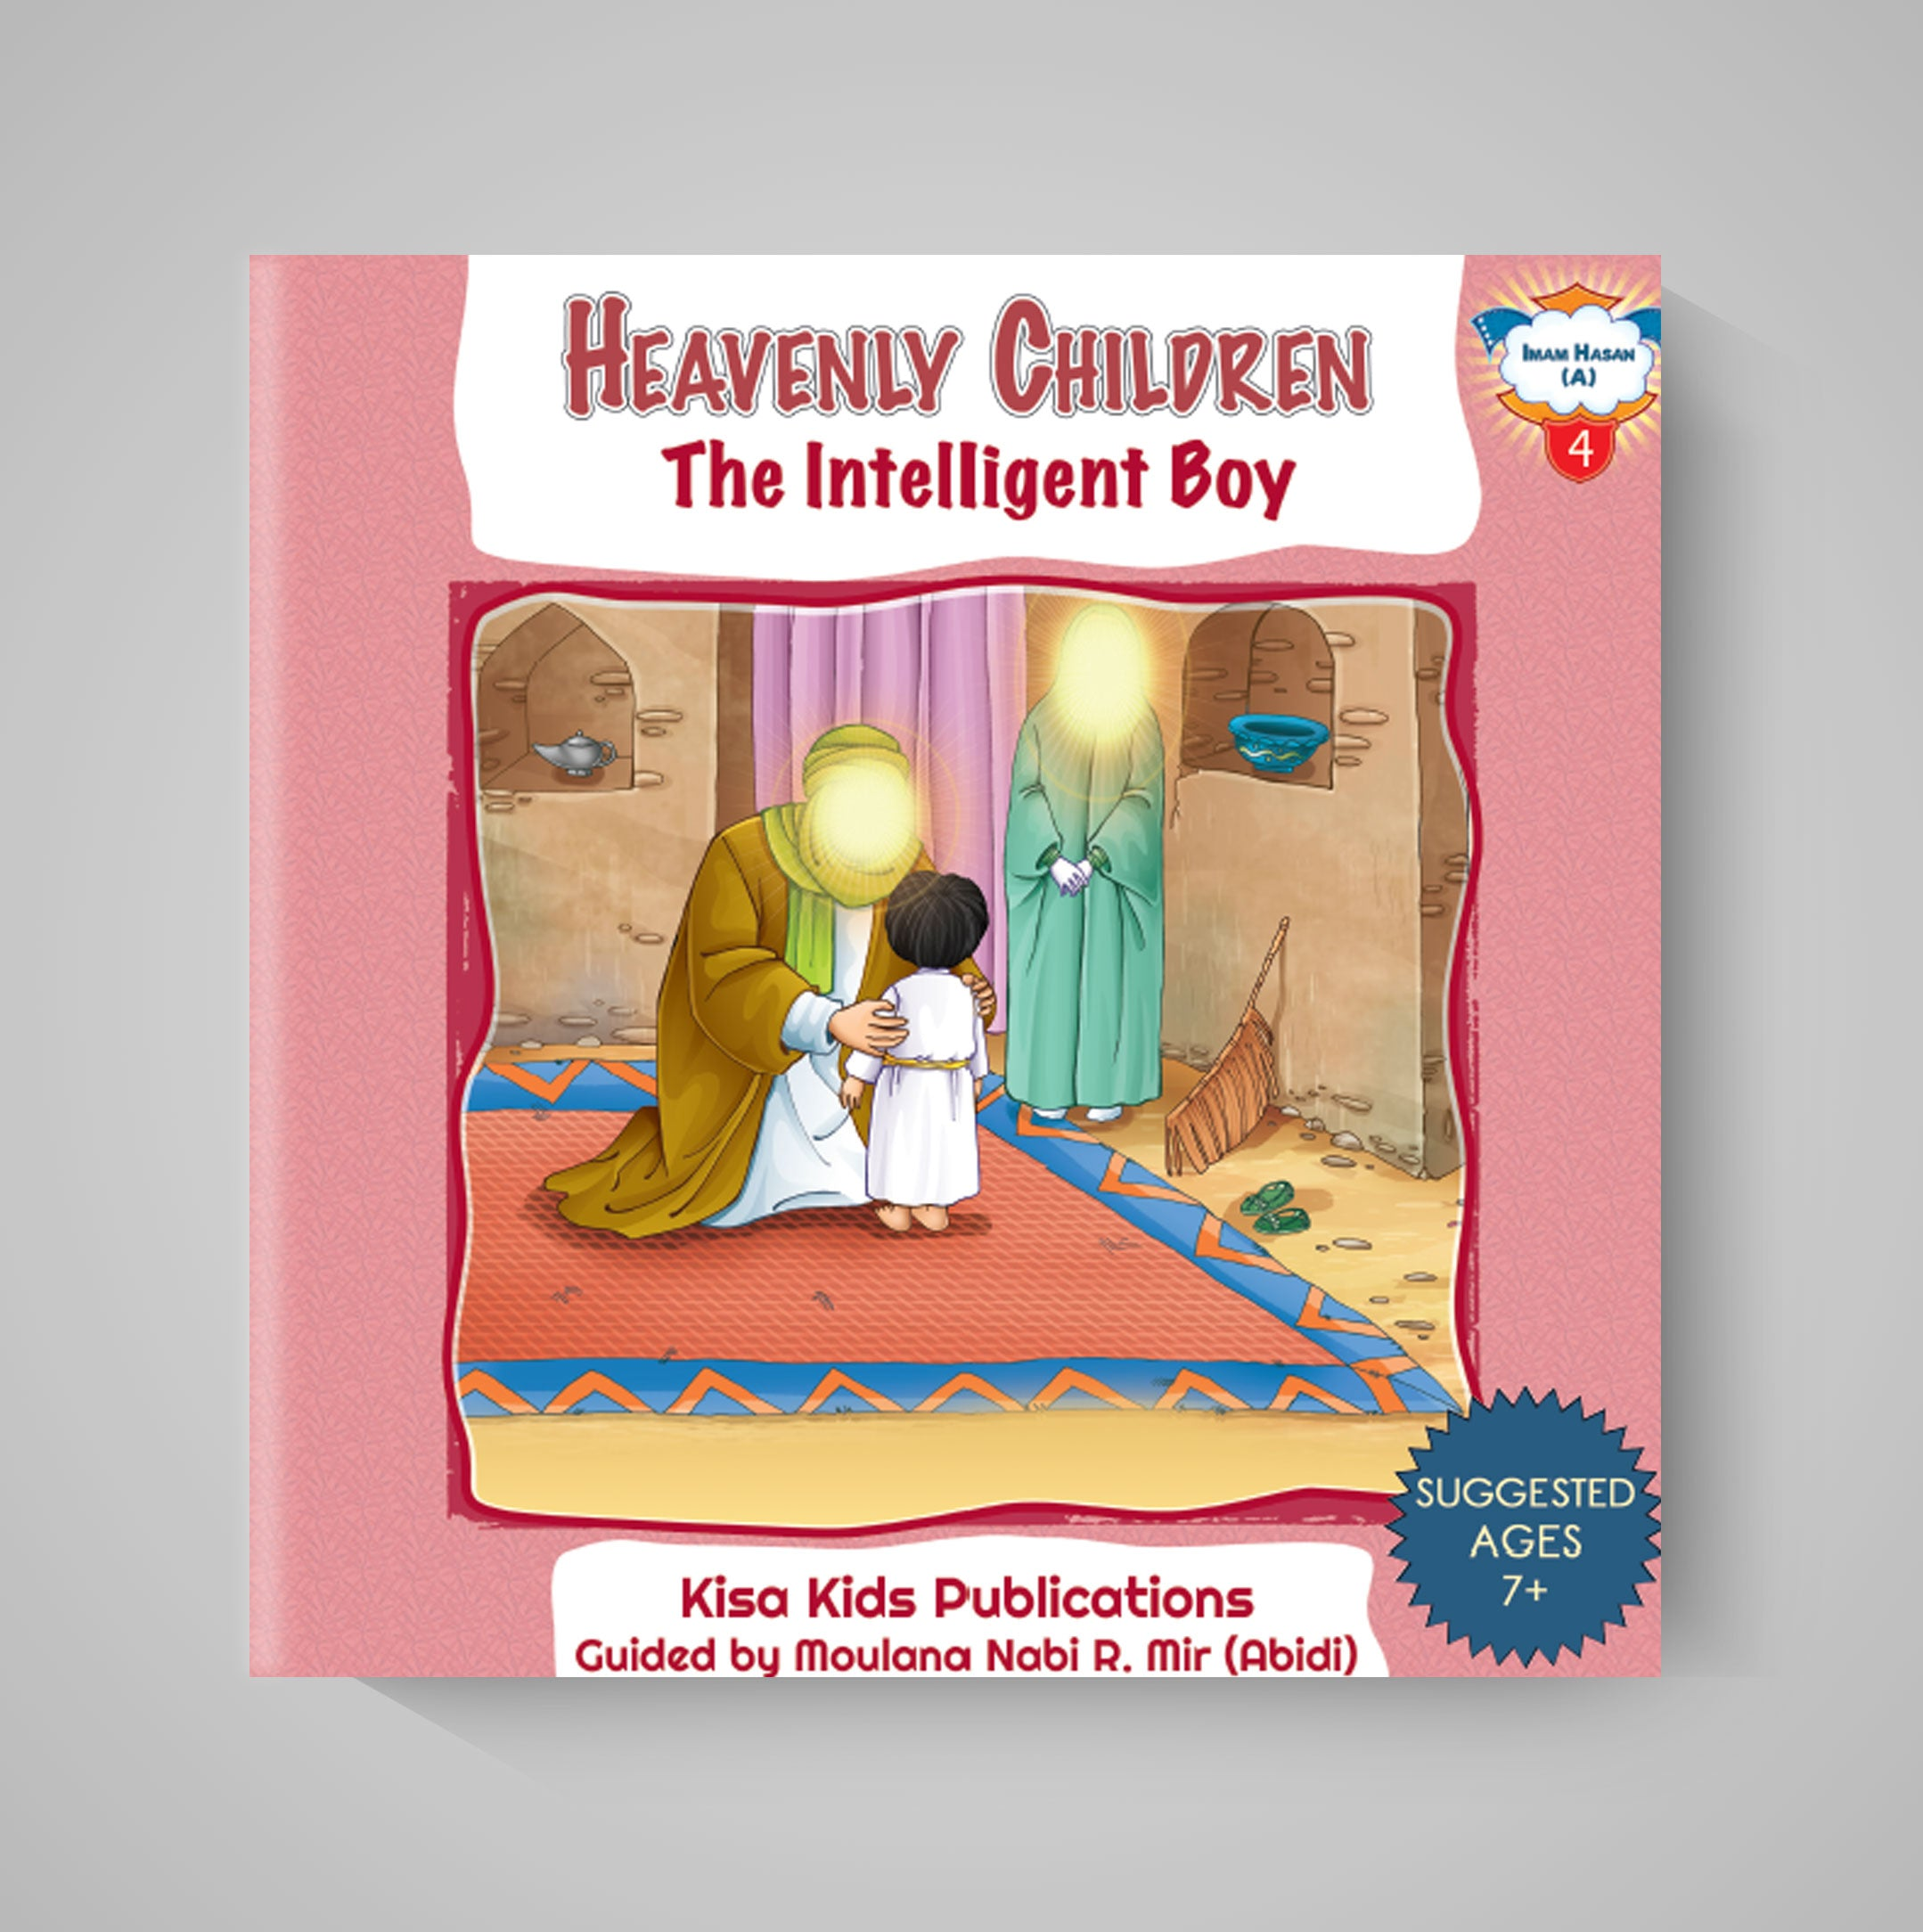 The Heavenly Children